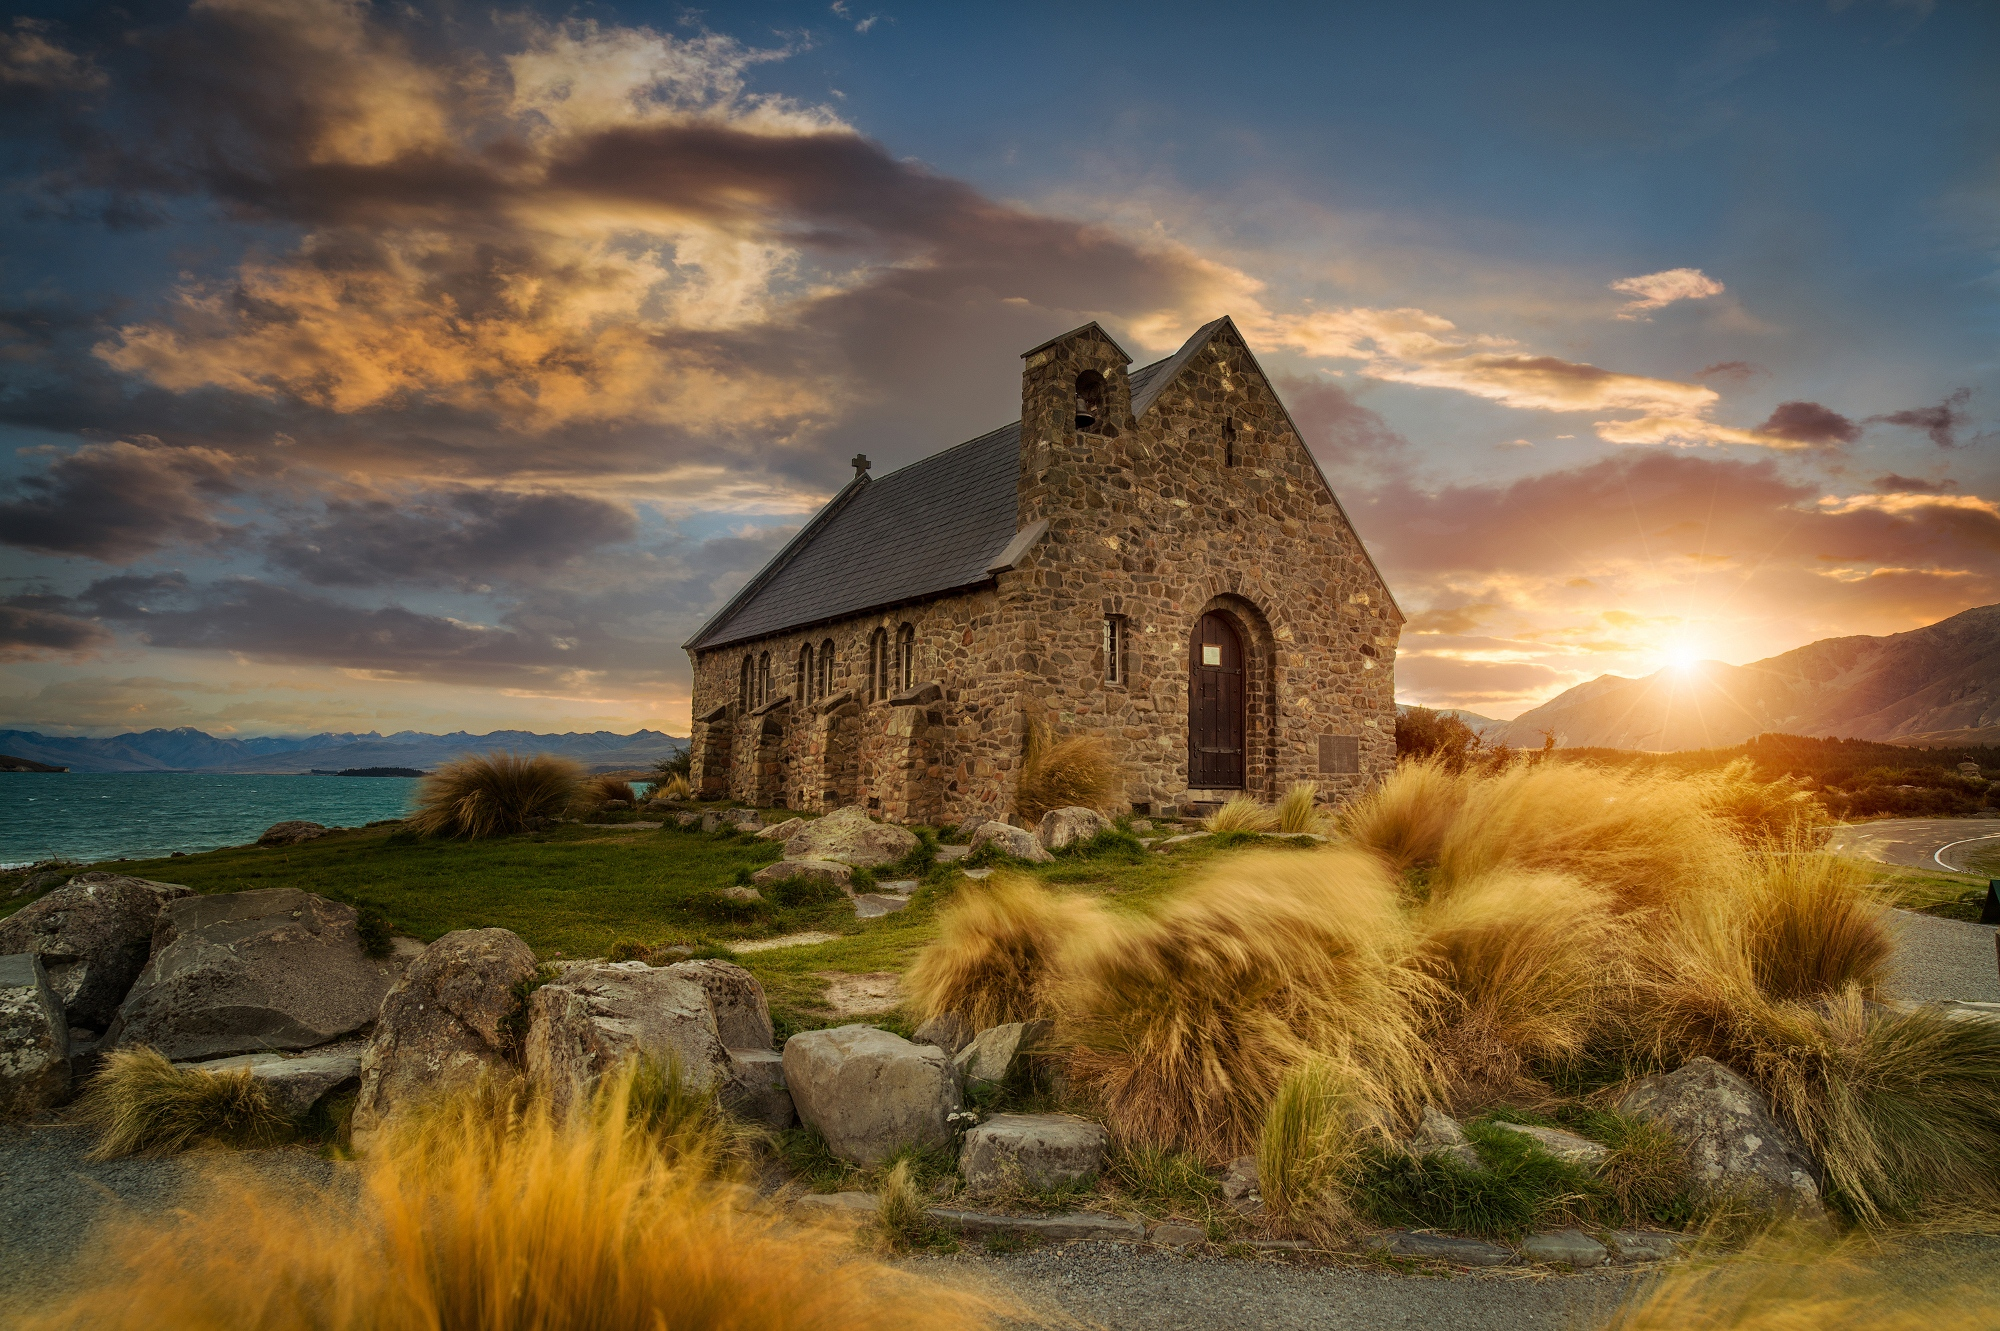 Historical church in New Zealand